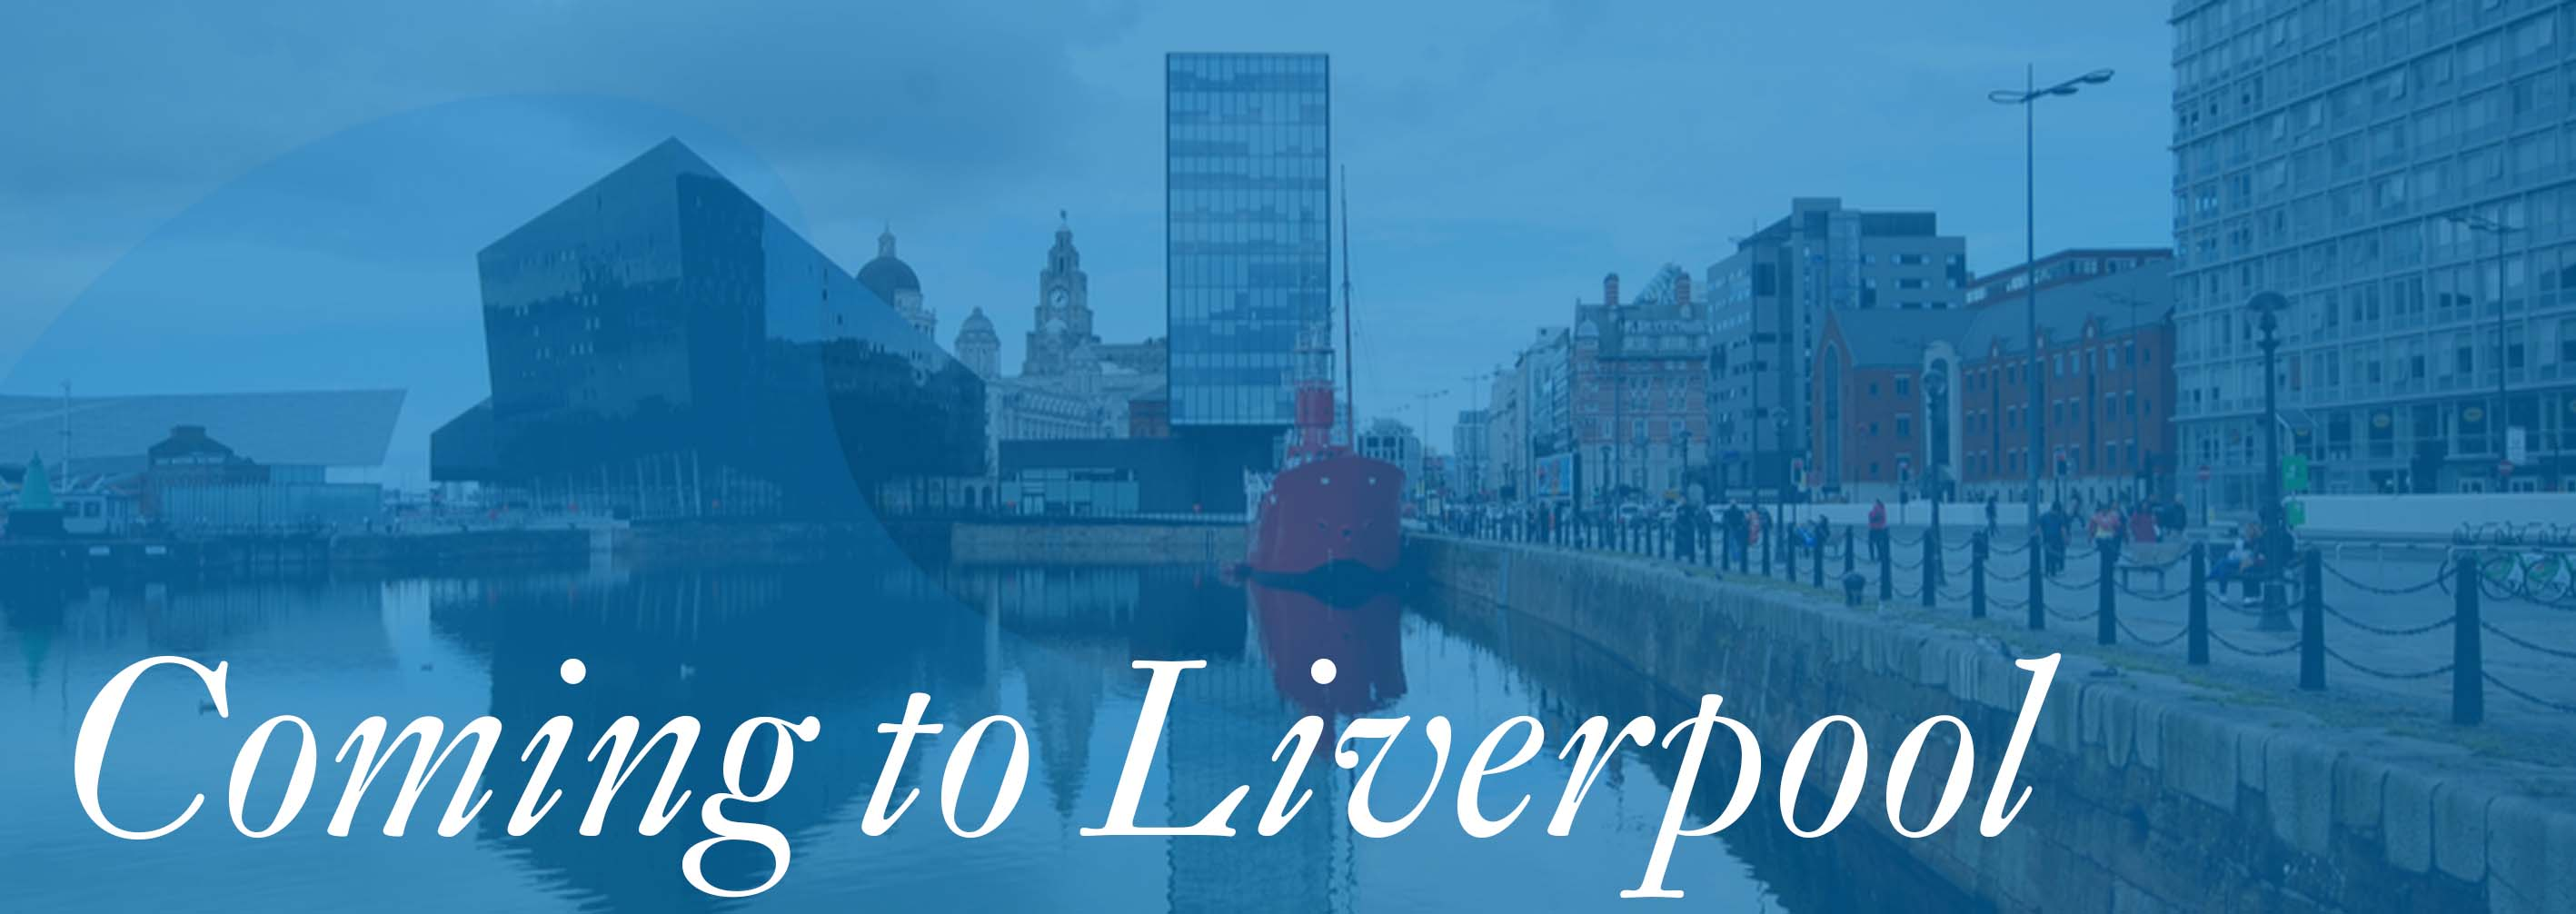 Getting to Liverpool - banner image